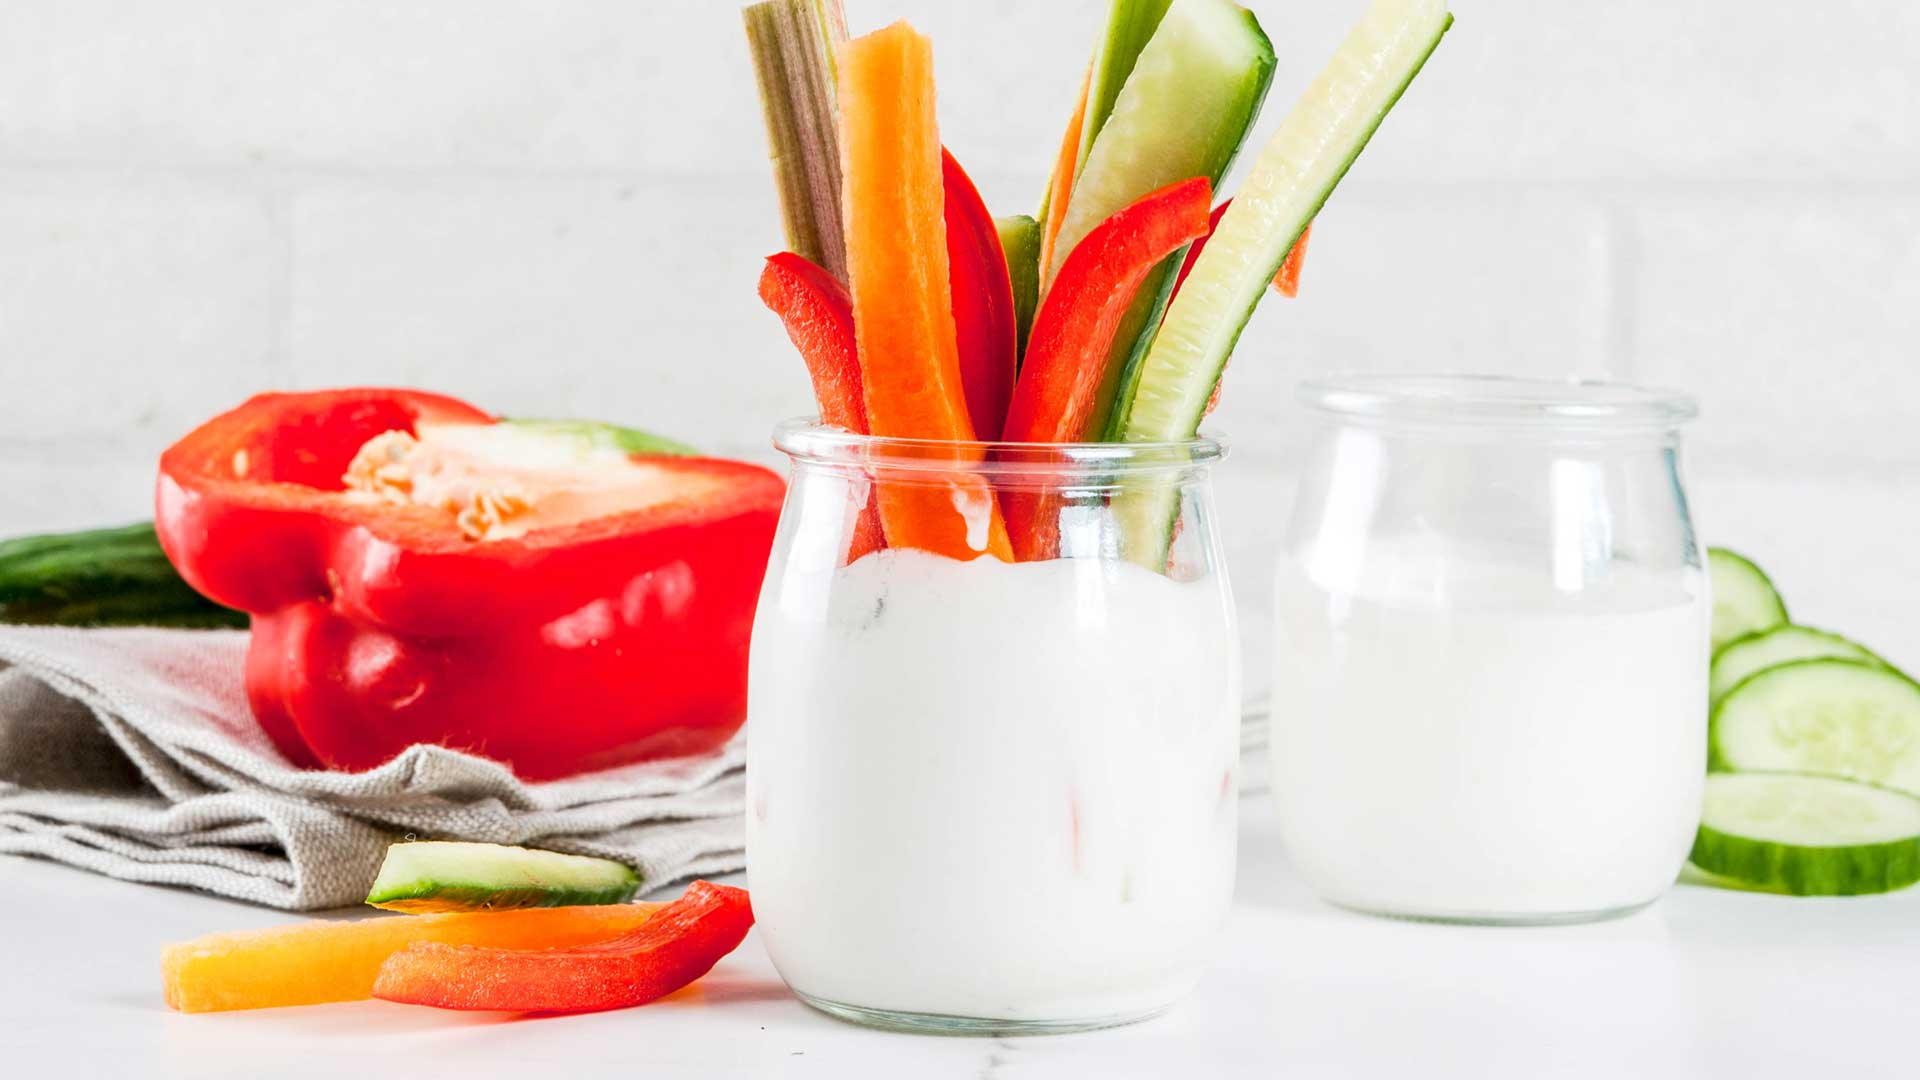 Summer healthy snack appetizer, assorted colorful fresh vegetable sticks (celery, rhubarb, pepper, cucumber and carrot) with yoghurt sauce dip, white marble background copy space